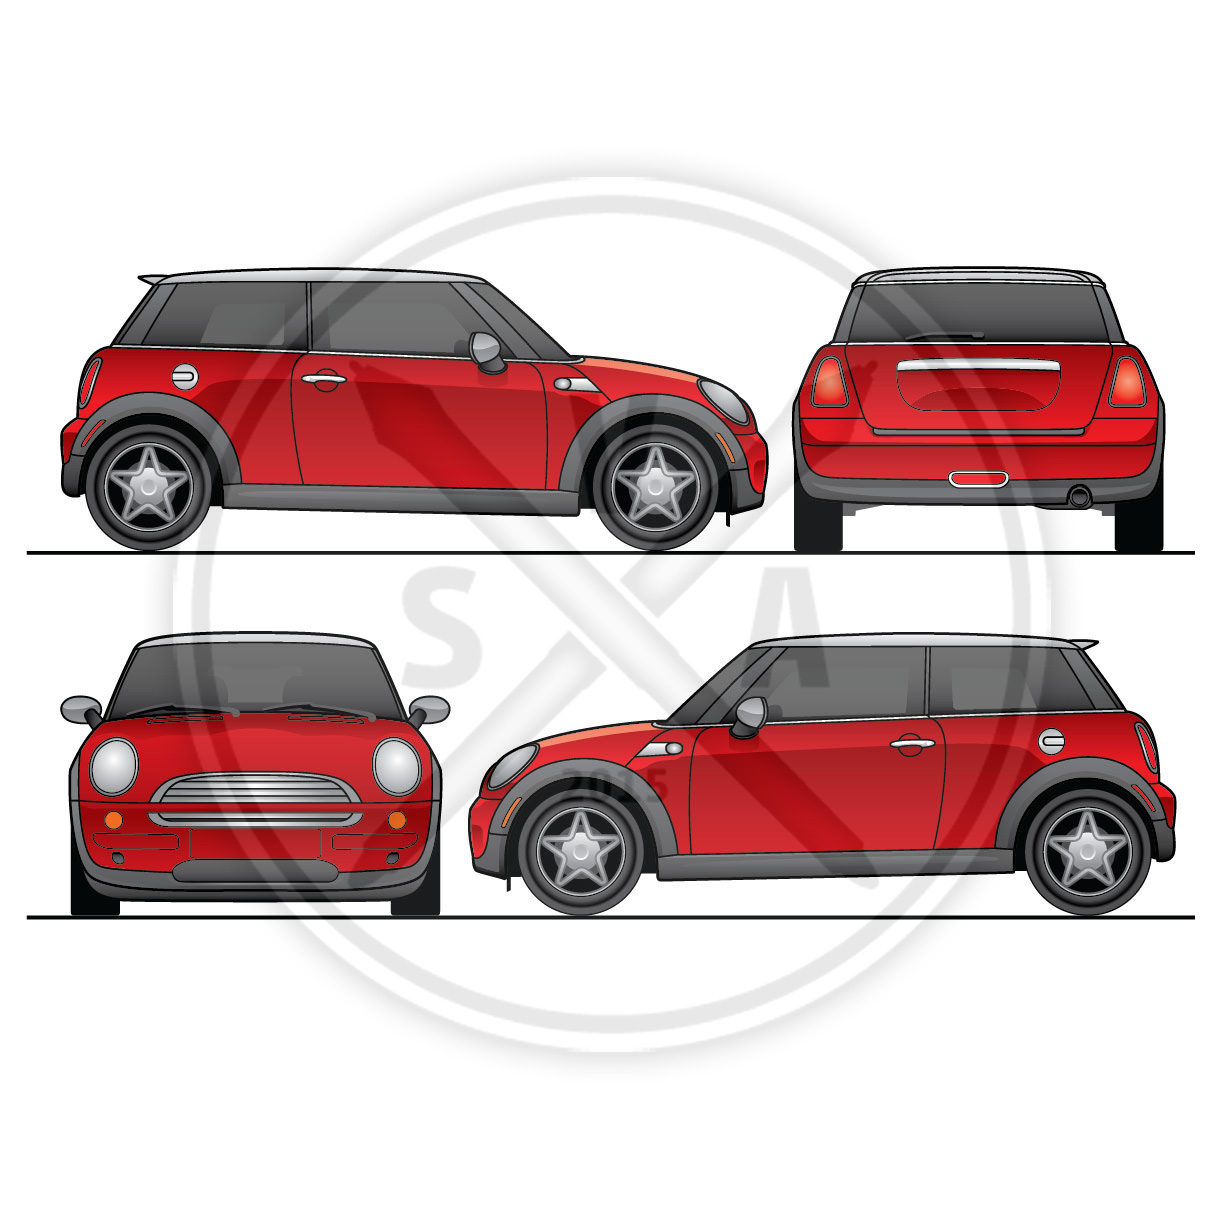 car wrap templates free download - mini cooper wrap design template stock vector art